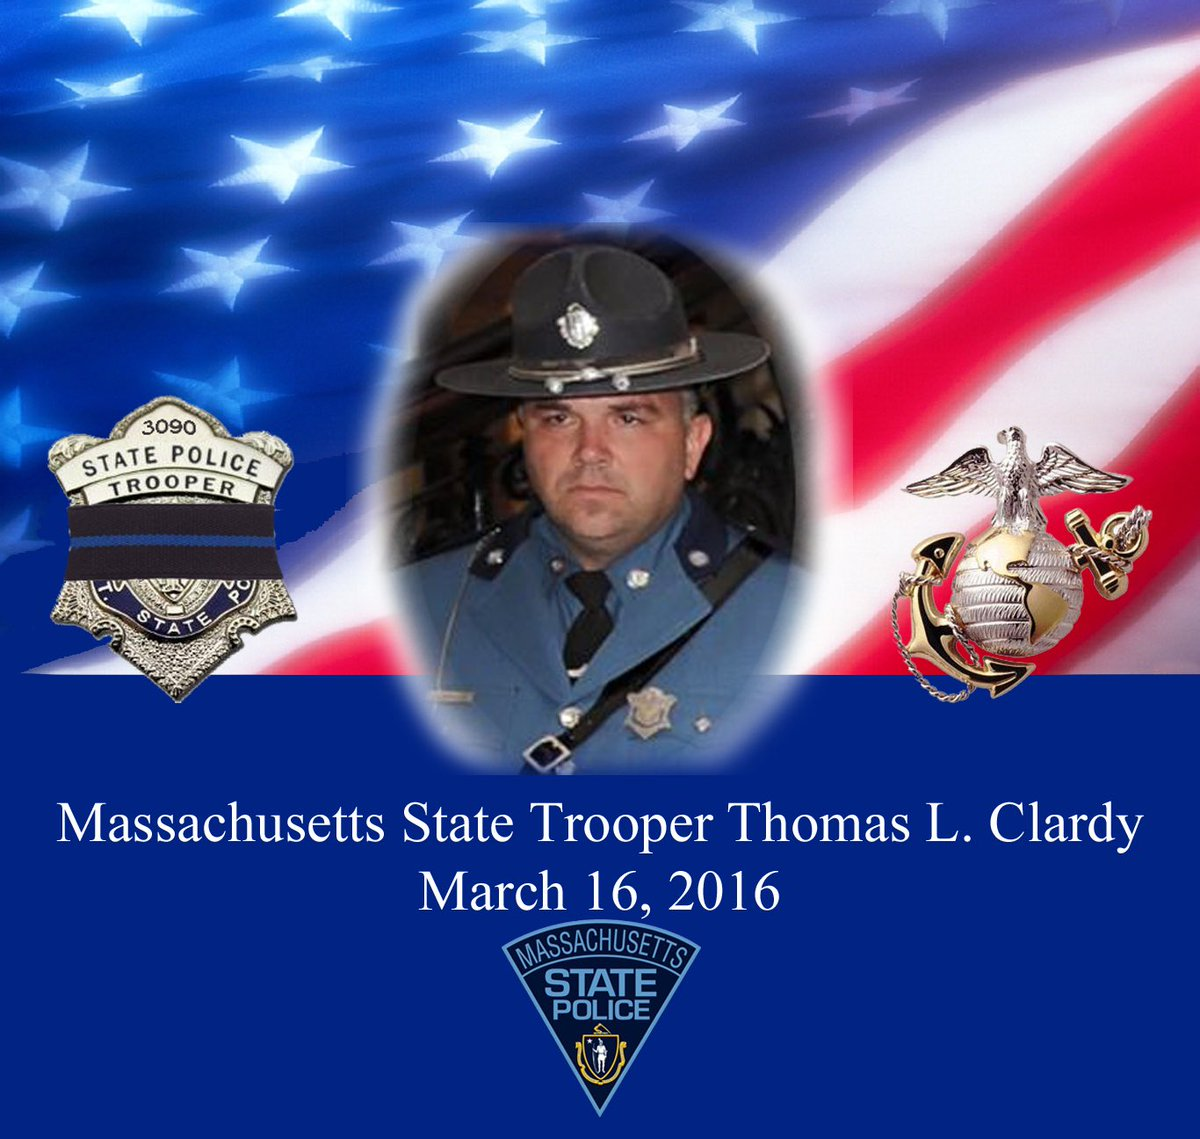 We are deeply saddened at the loss of Tpr Tom Clardy. May he rest in peace. Please pray for his family. #LODD https://t.co/wLxkt50JvY